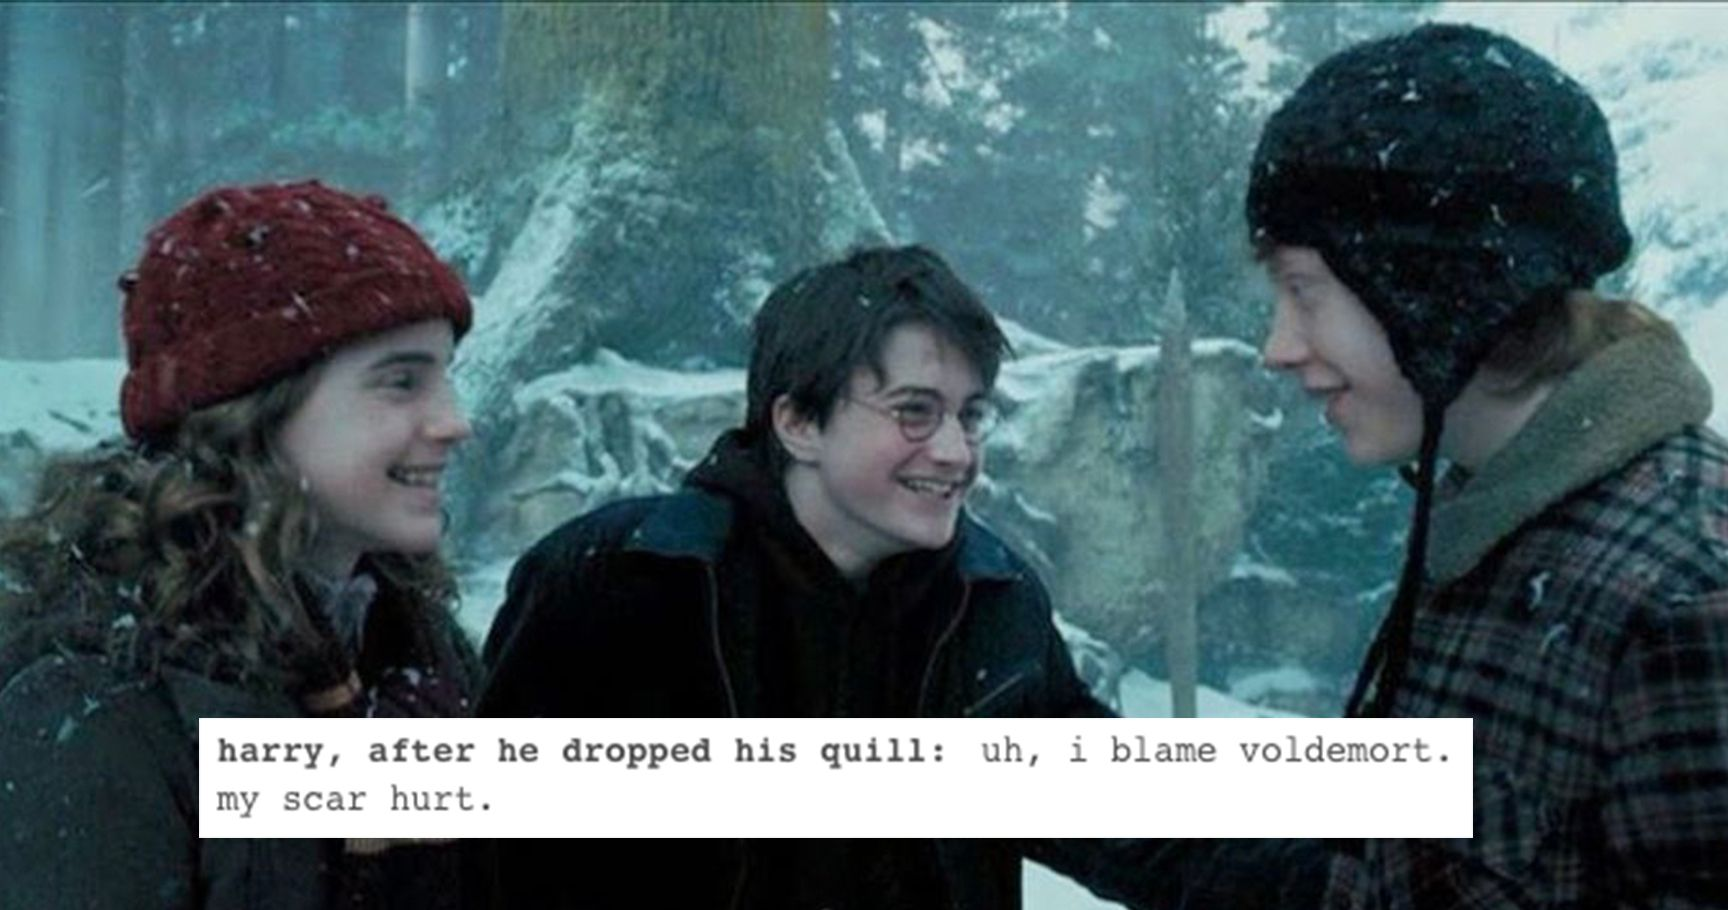 15 Hilariously Incorrect 'Harry Potter' Quotes That Will Make Any Potterhead LOL